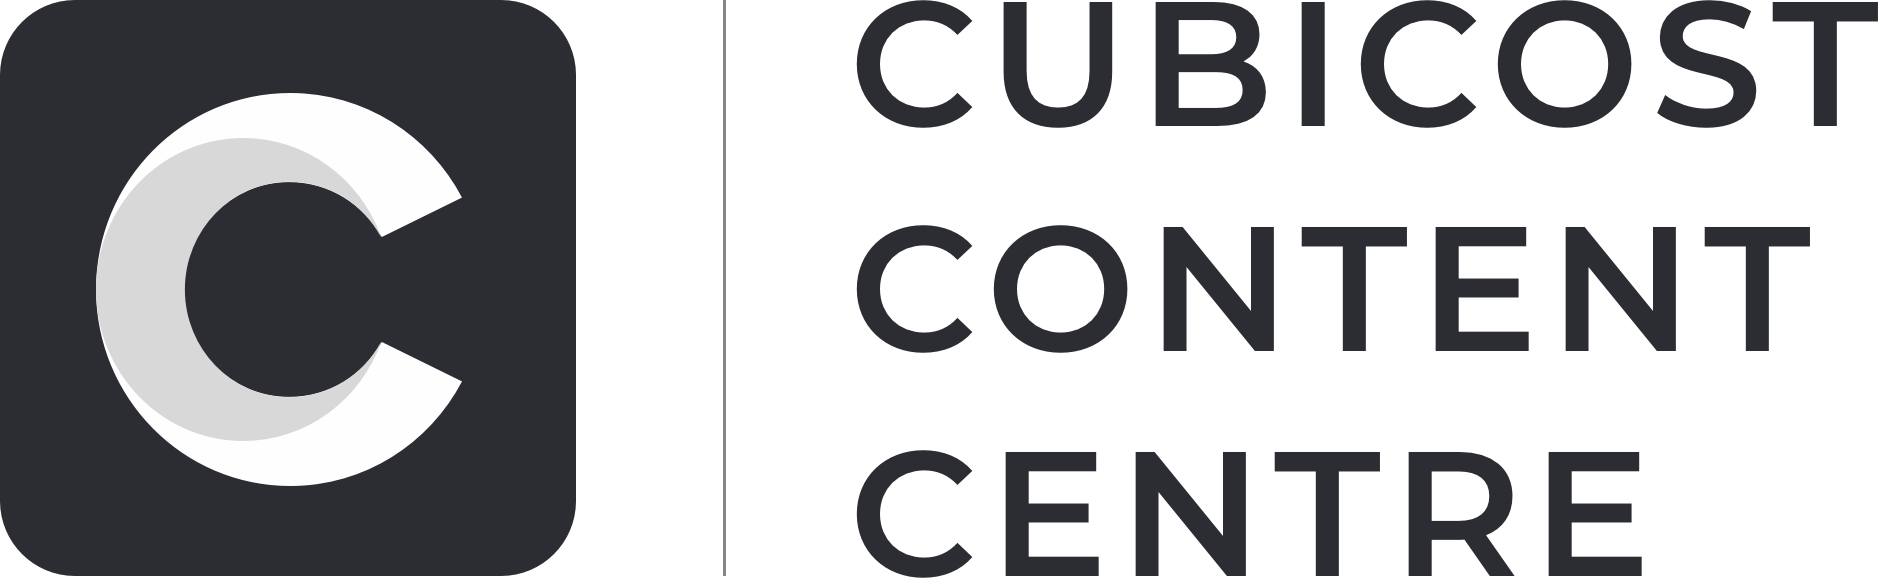 ccc-logo2